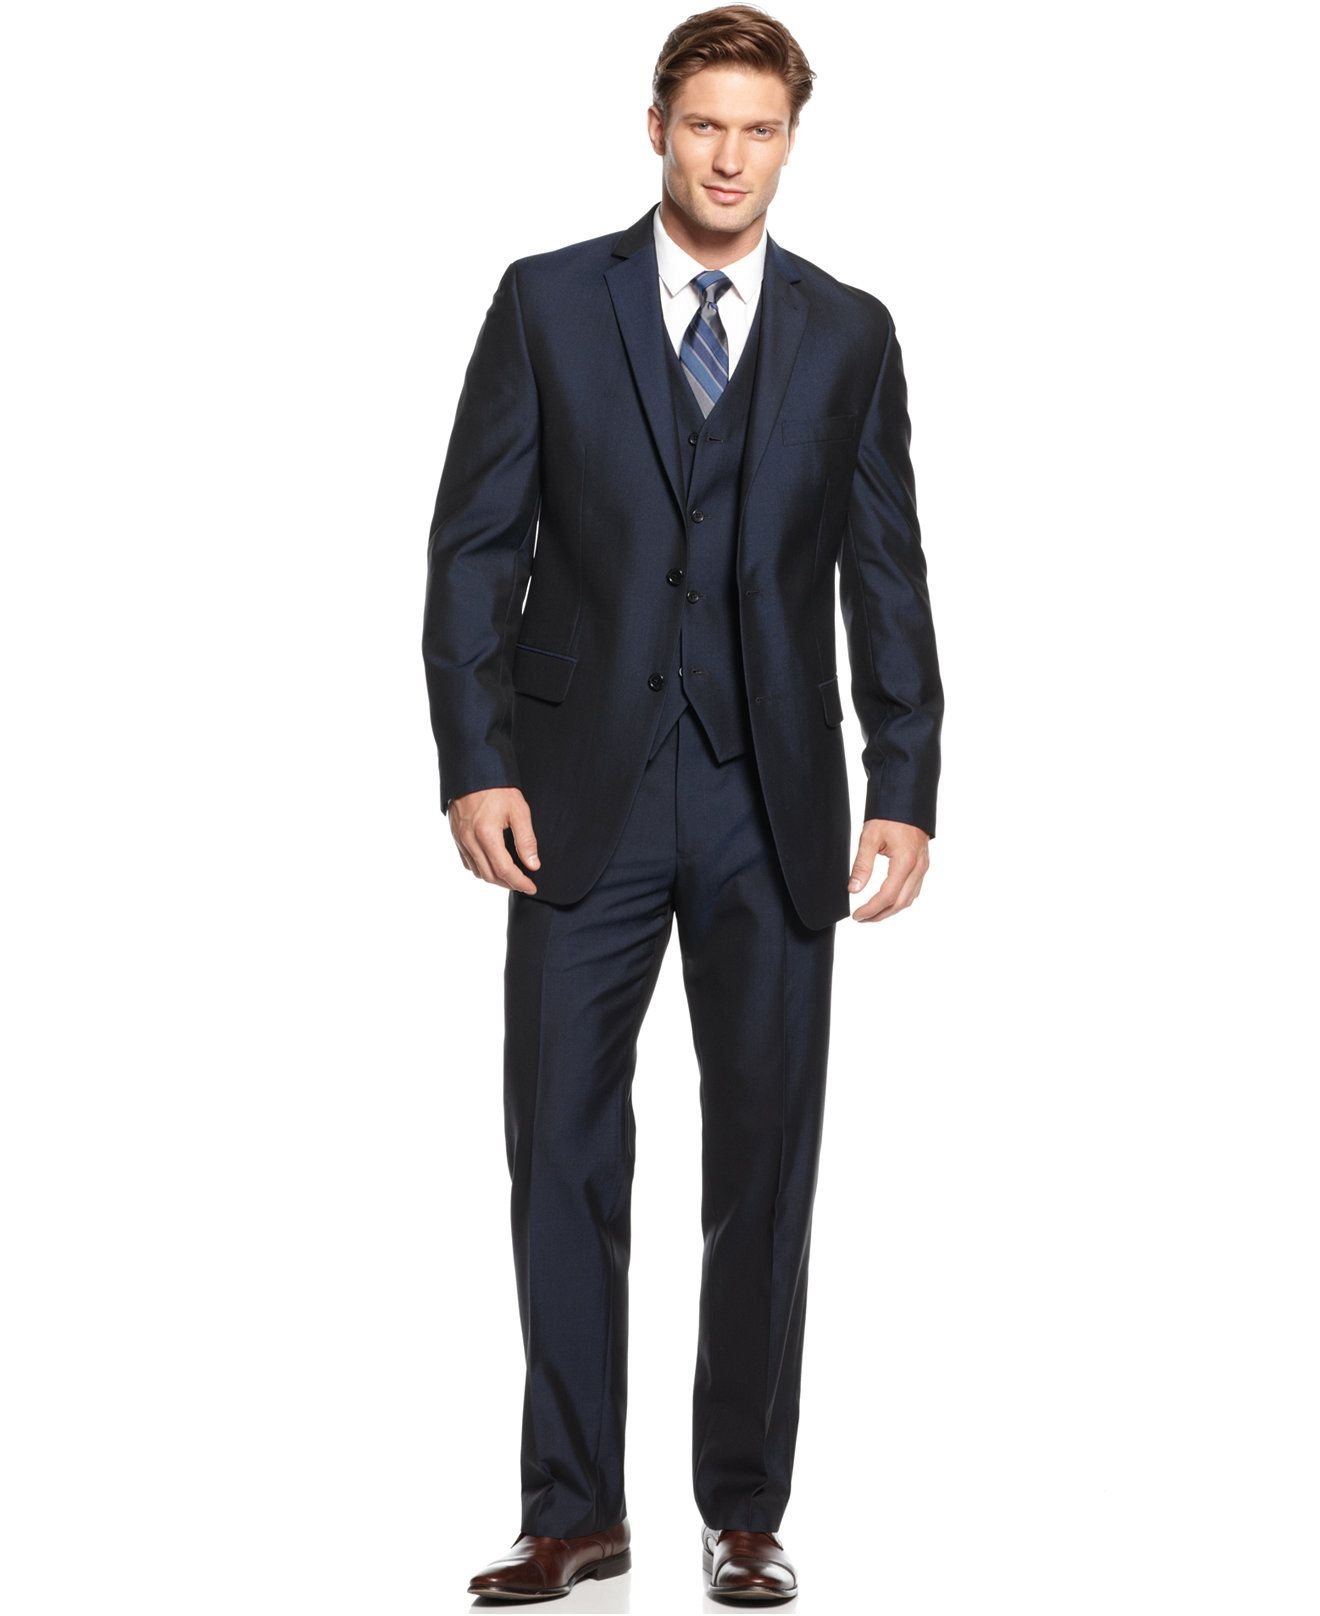 Alfani RED Navy Textured Slim-Fit Suit Separates - Suits & Suit ...